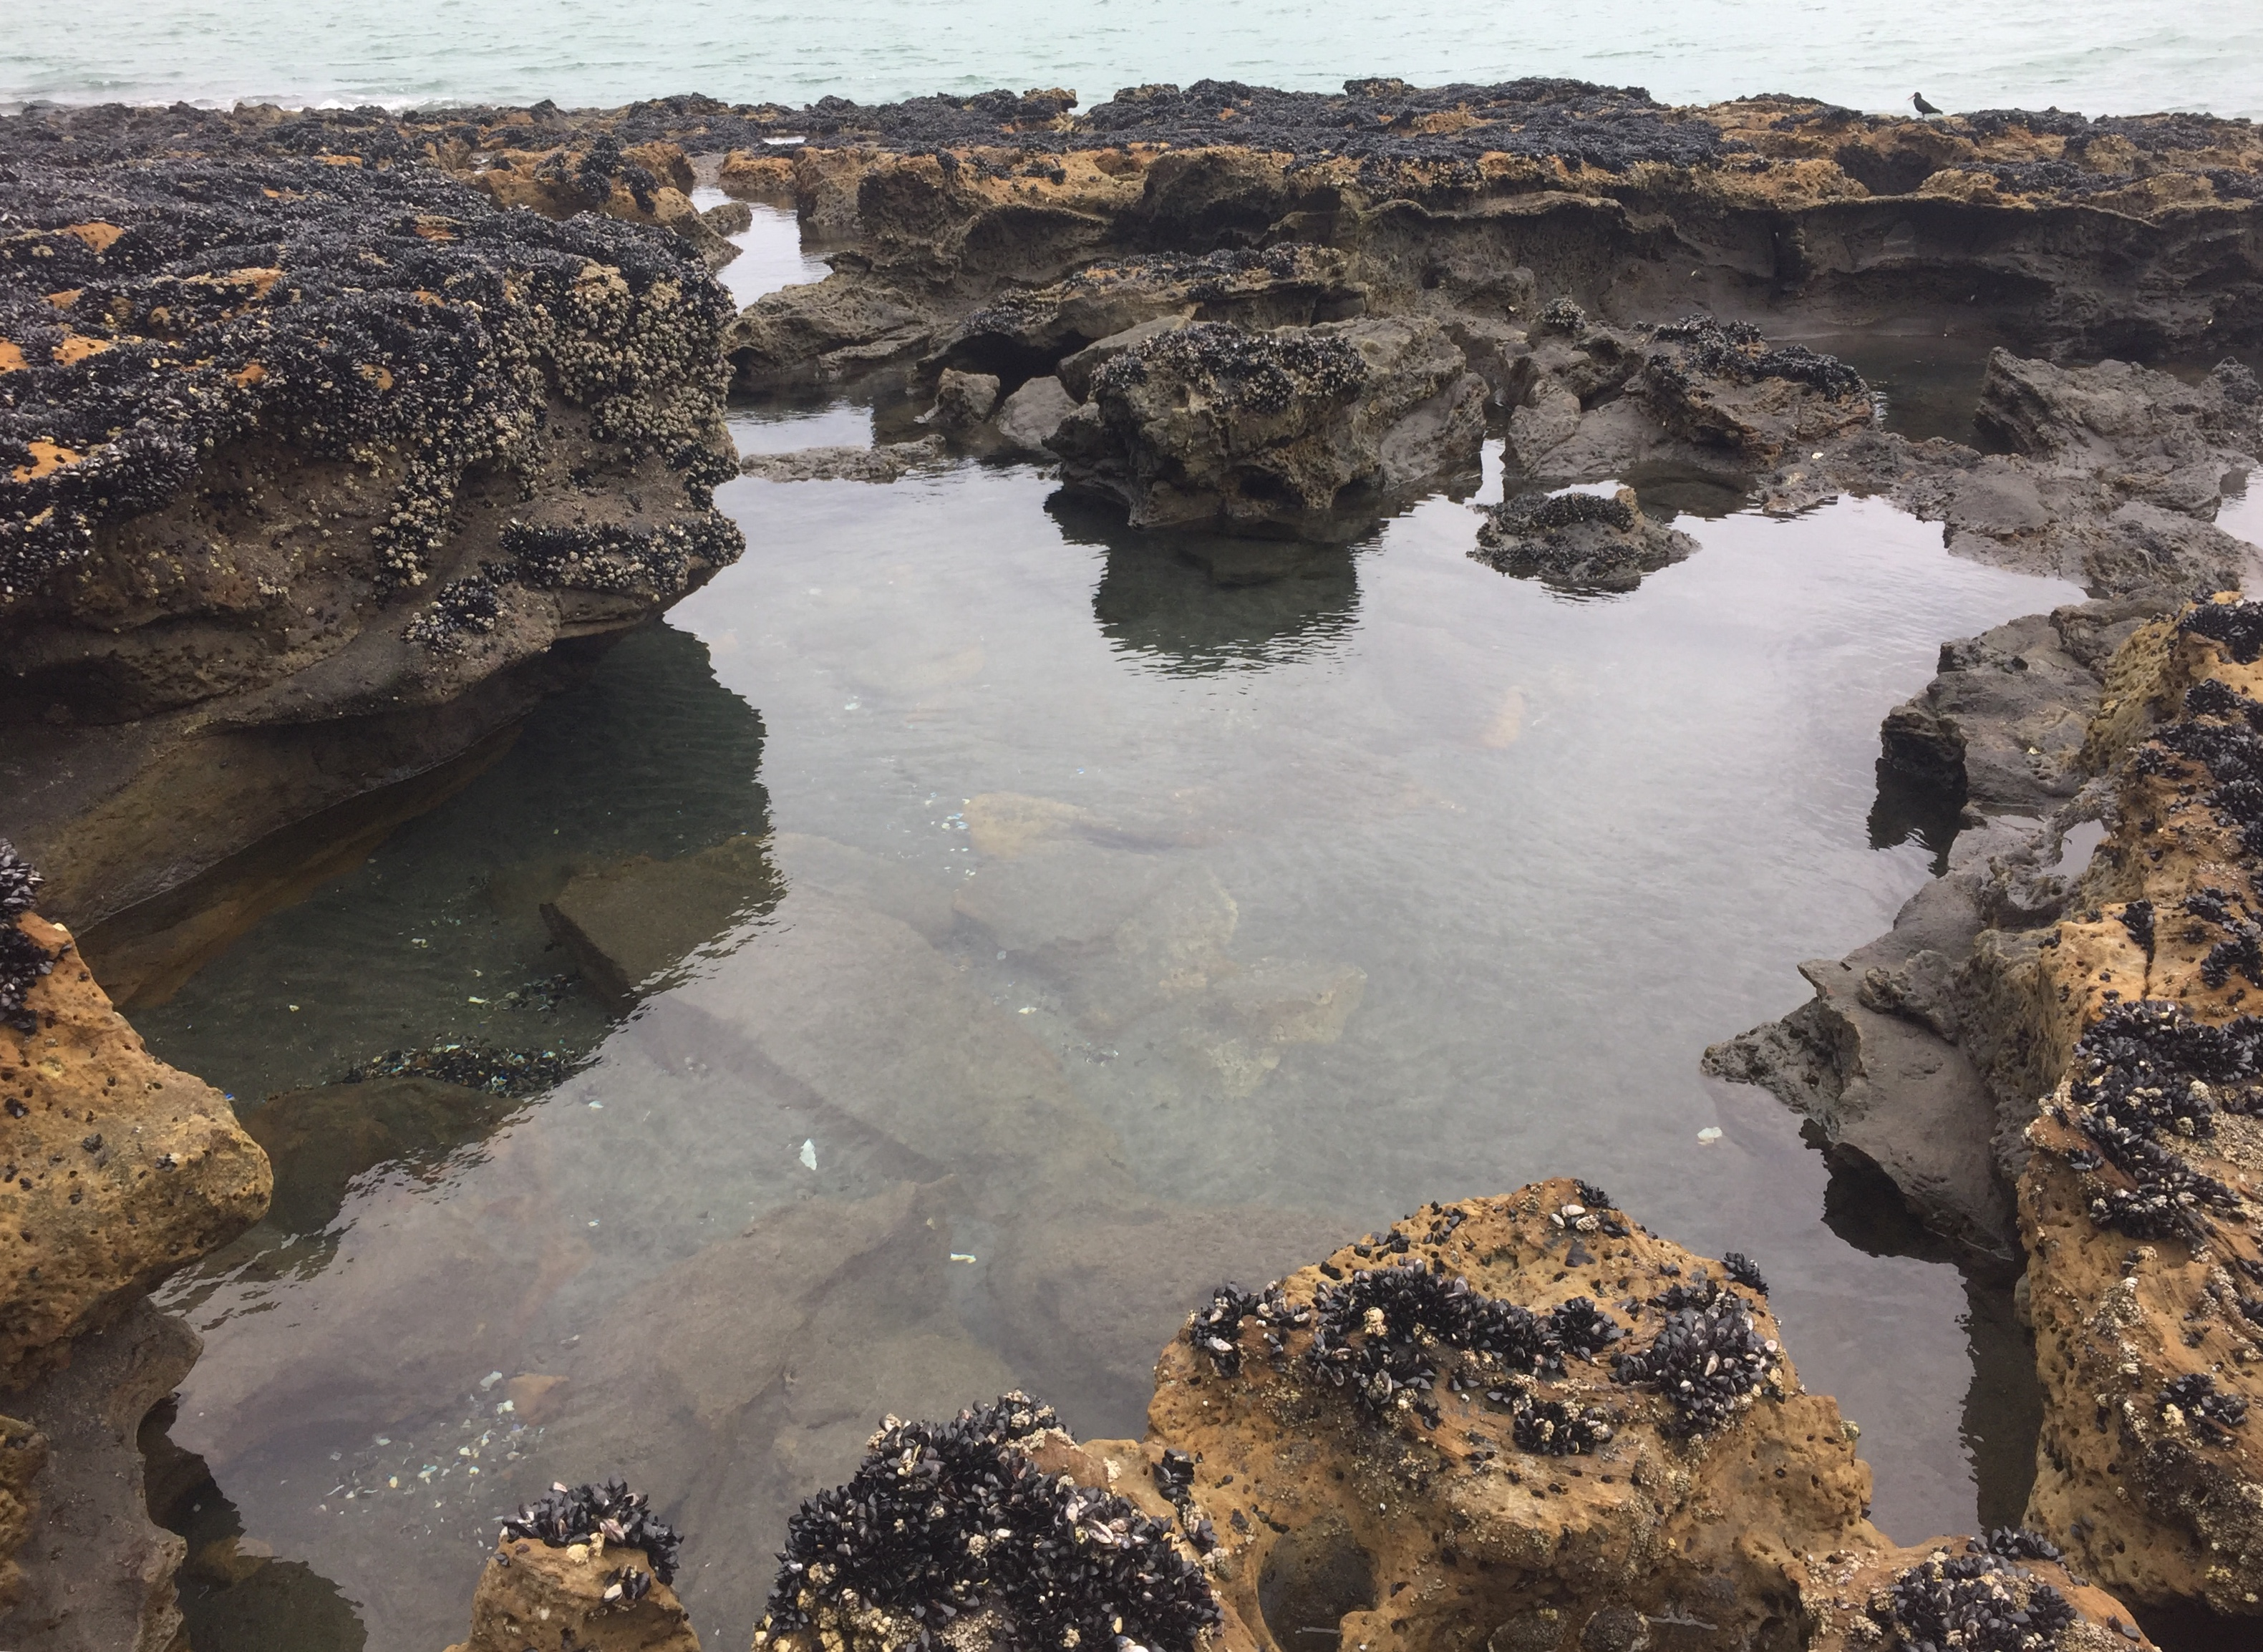 Aotea harbour, new zealand, rock pools, fish